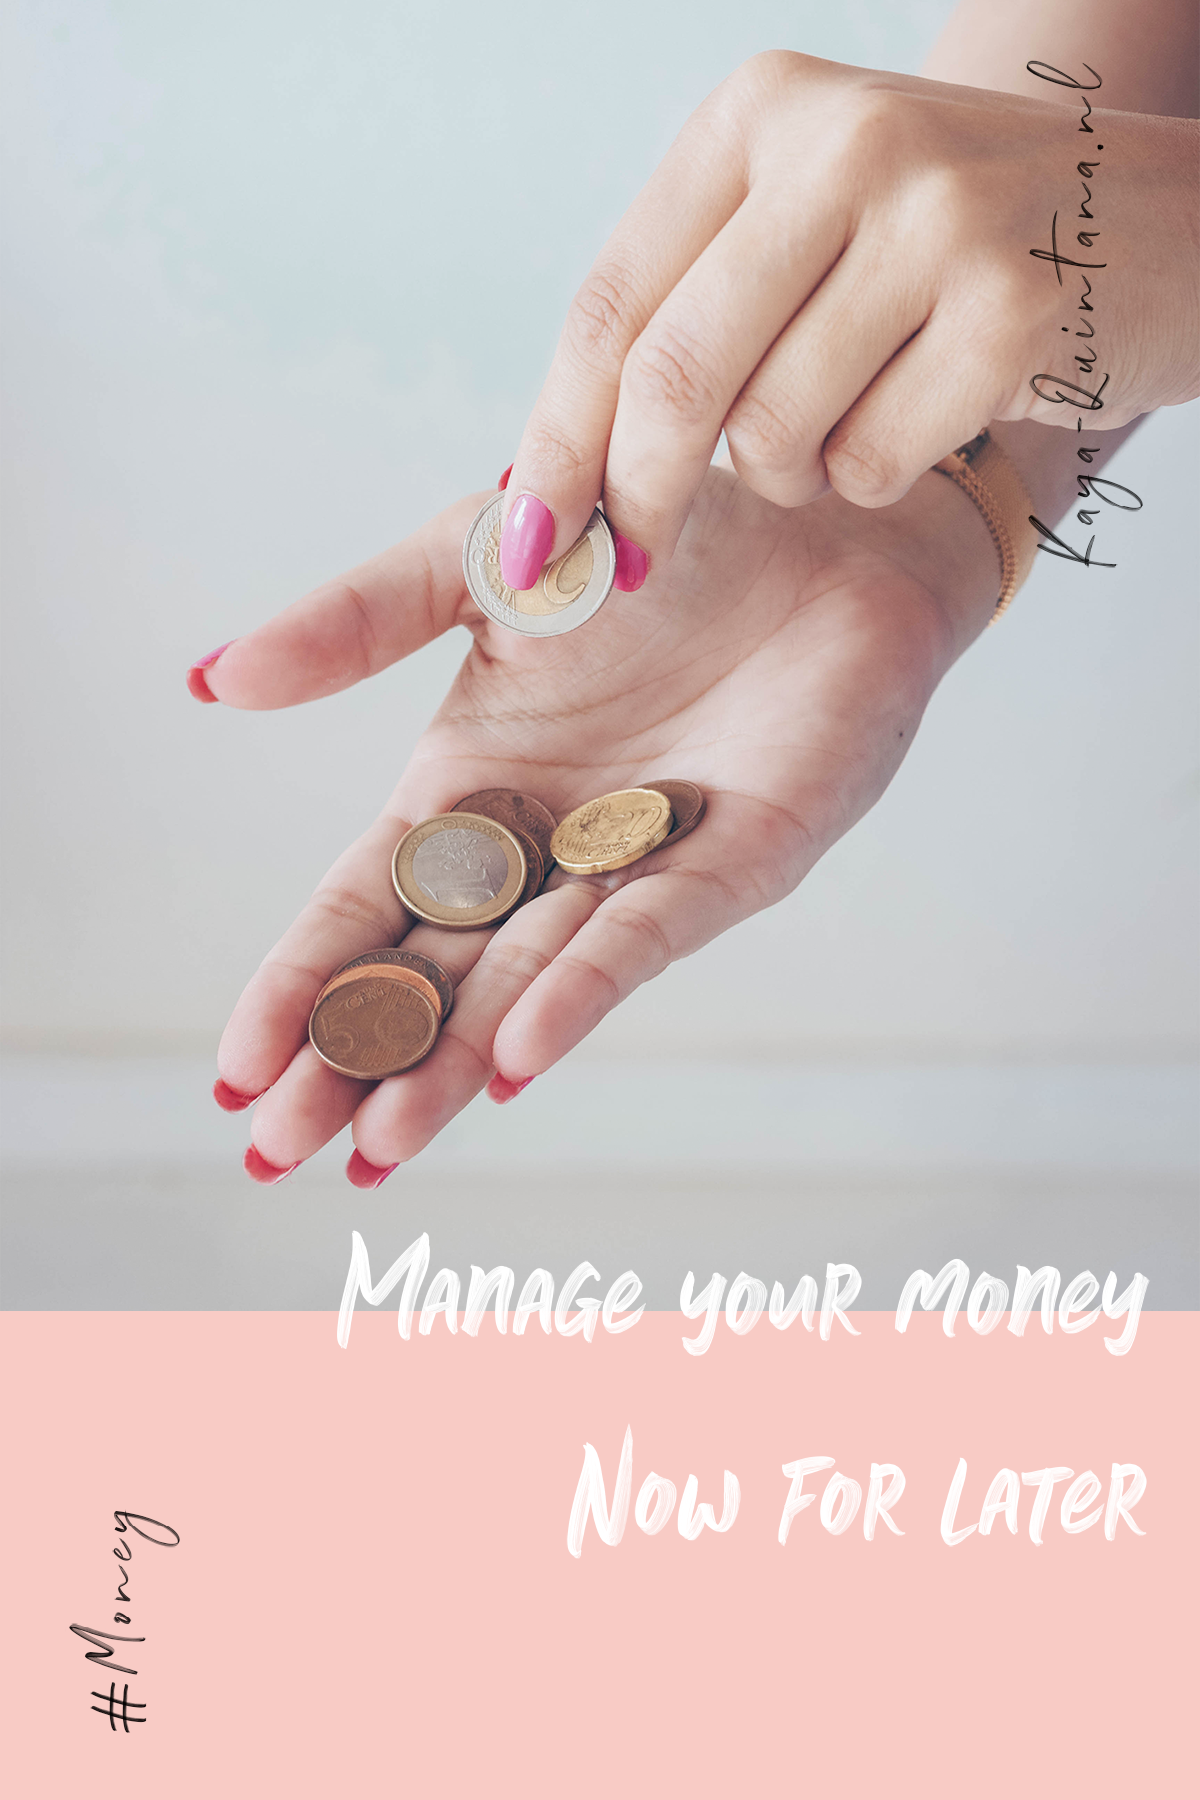 manage your money now for later